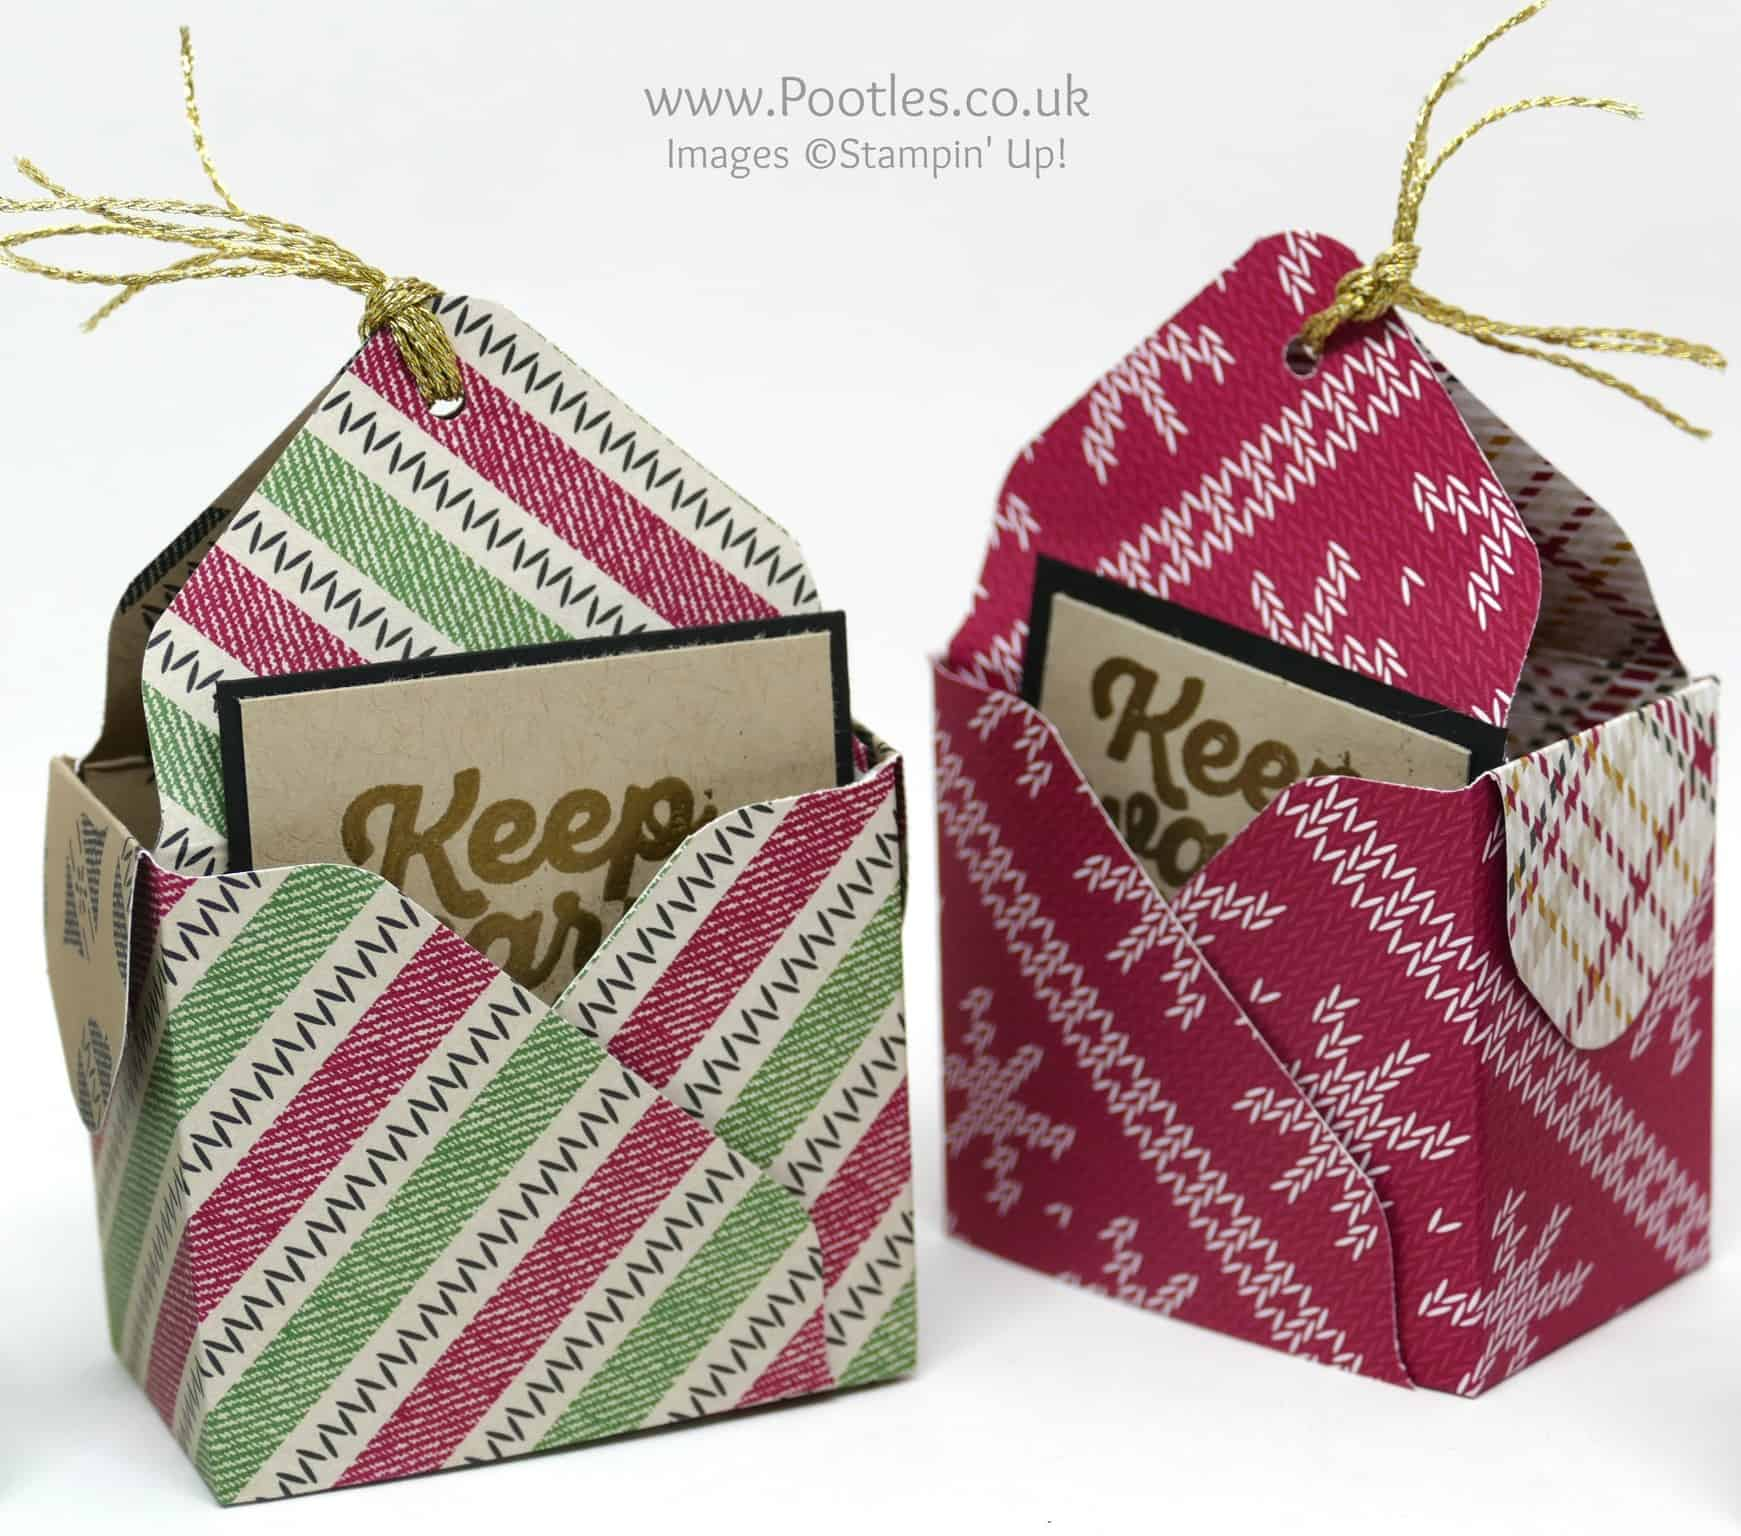 Pootles Advent Countdown 2016 #18 Envelope Punch Board Bag in a Box Chocolate Coin Treats